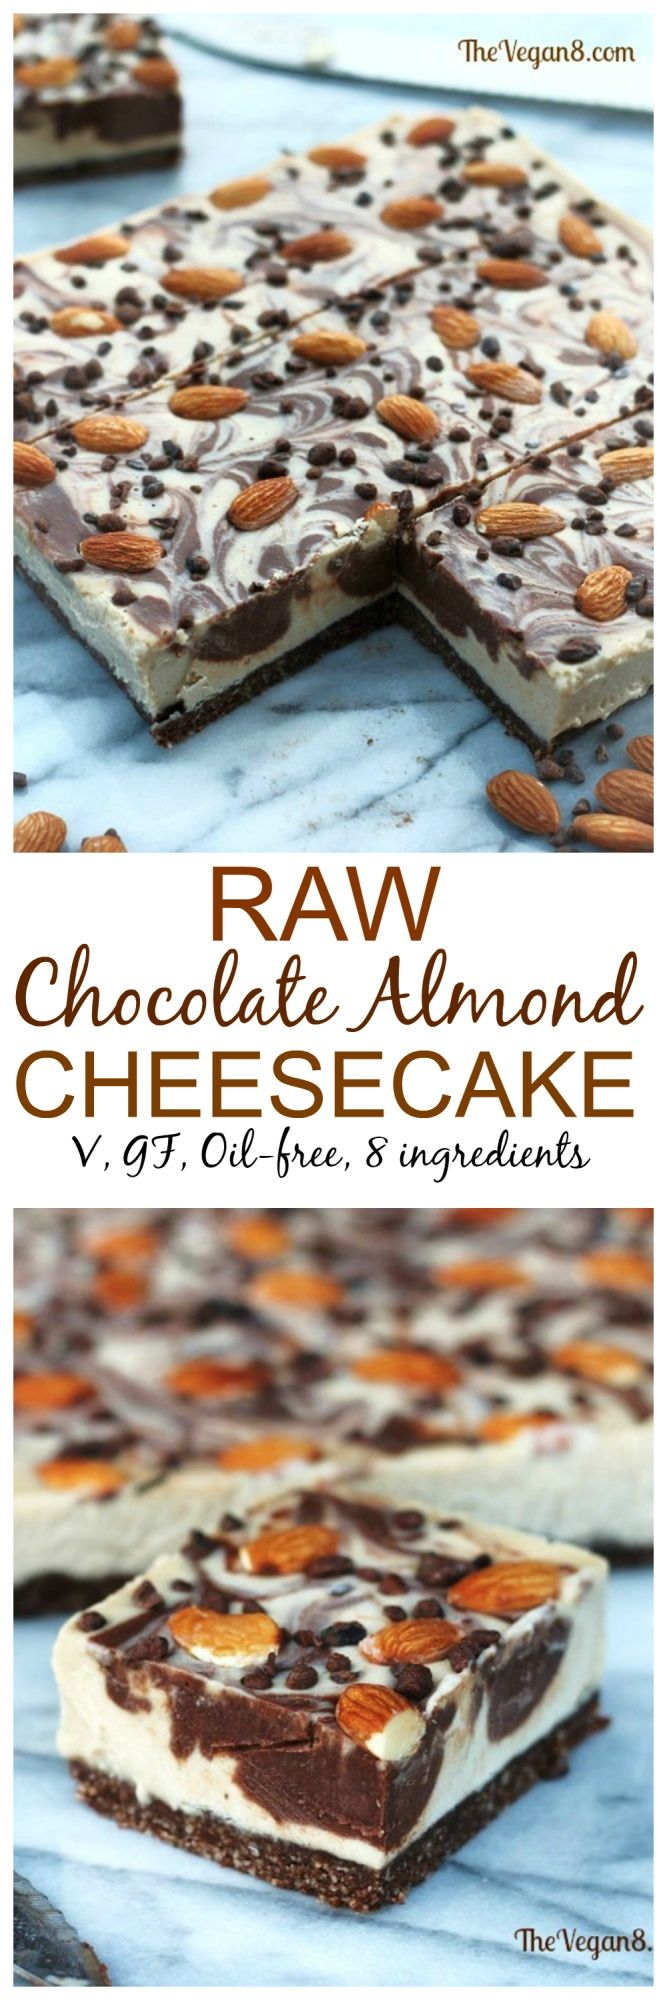 Fool your dairy loving friends with this no-bake easy Chocolate Almond Cheesecake!